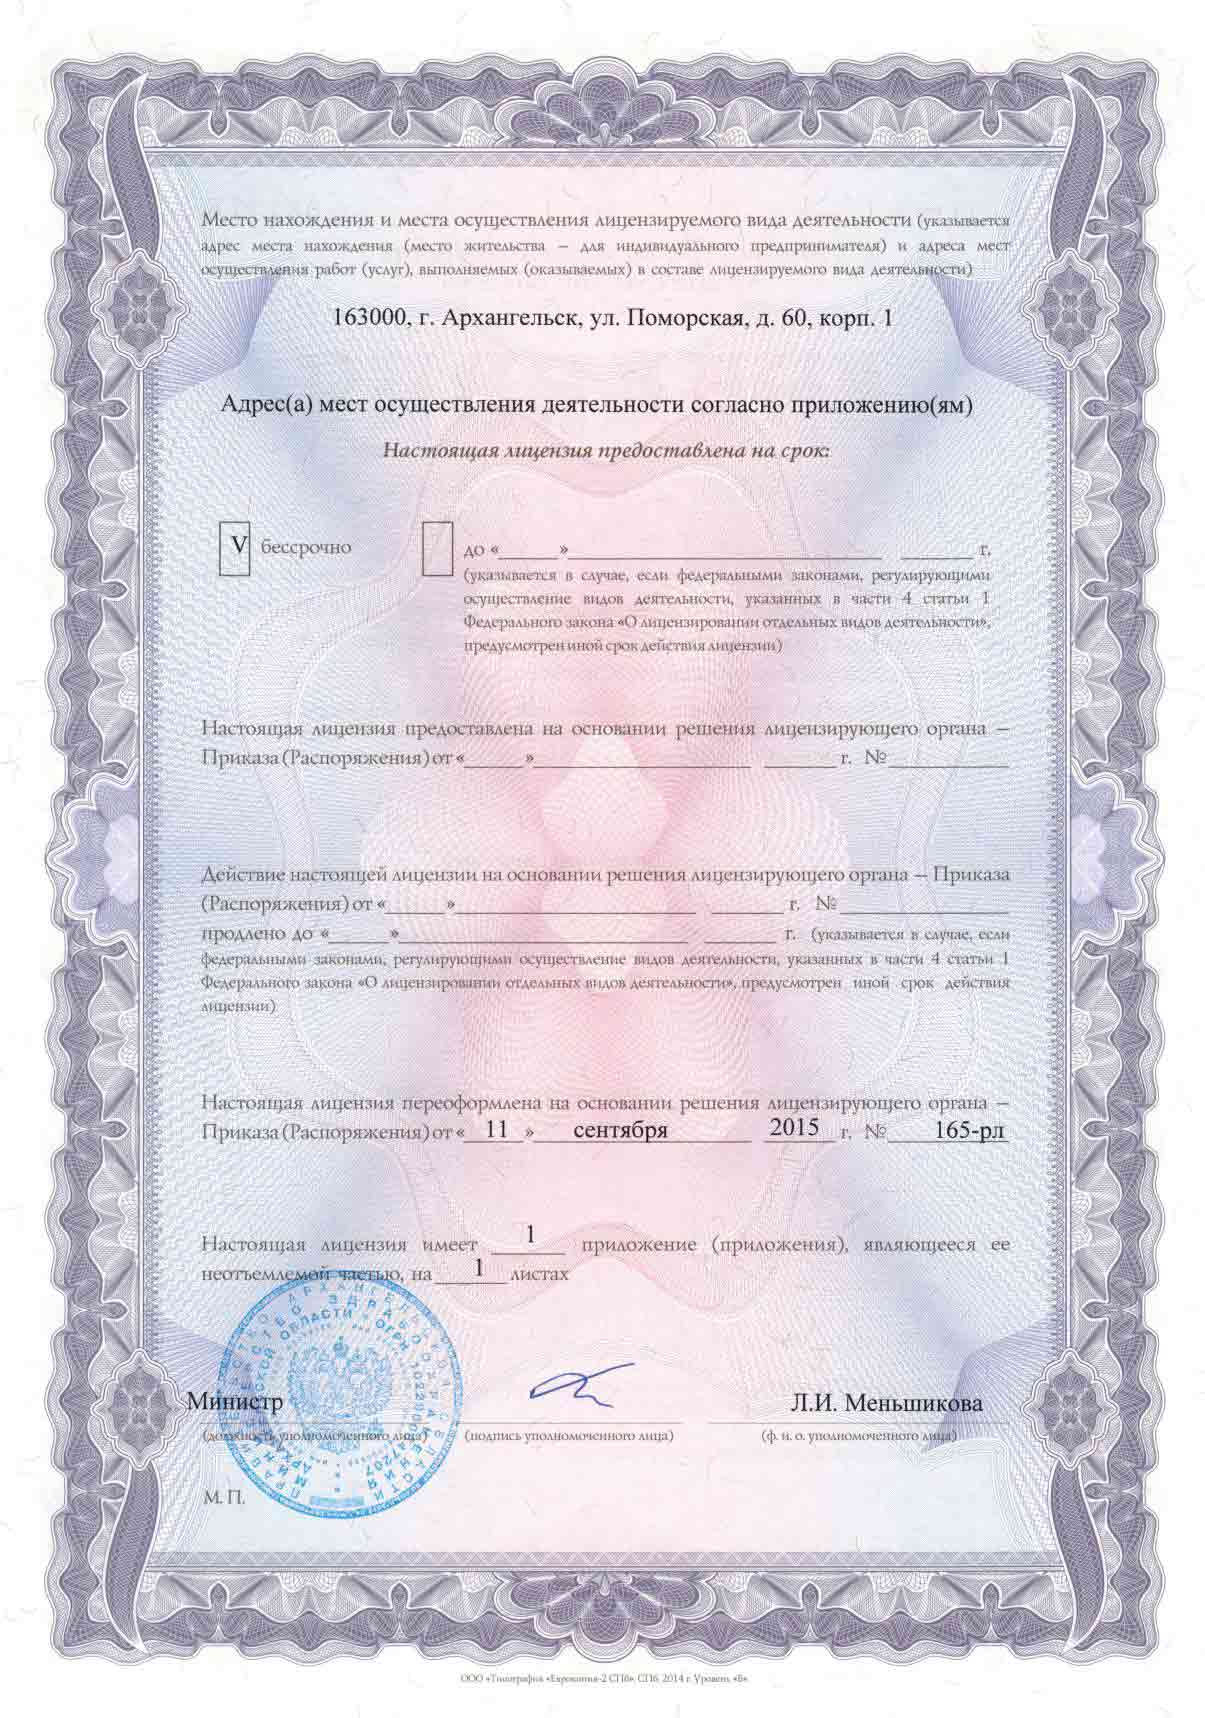 NewLicense-page-002.jpg